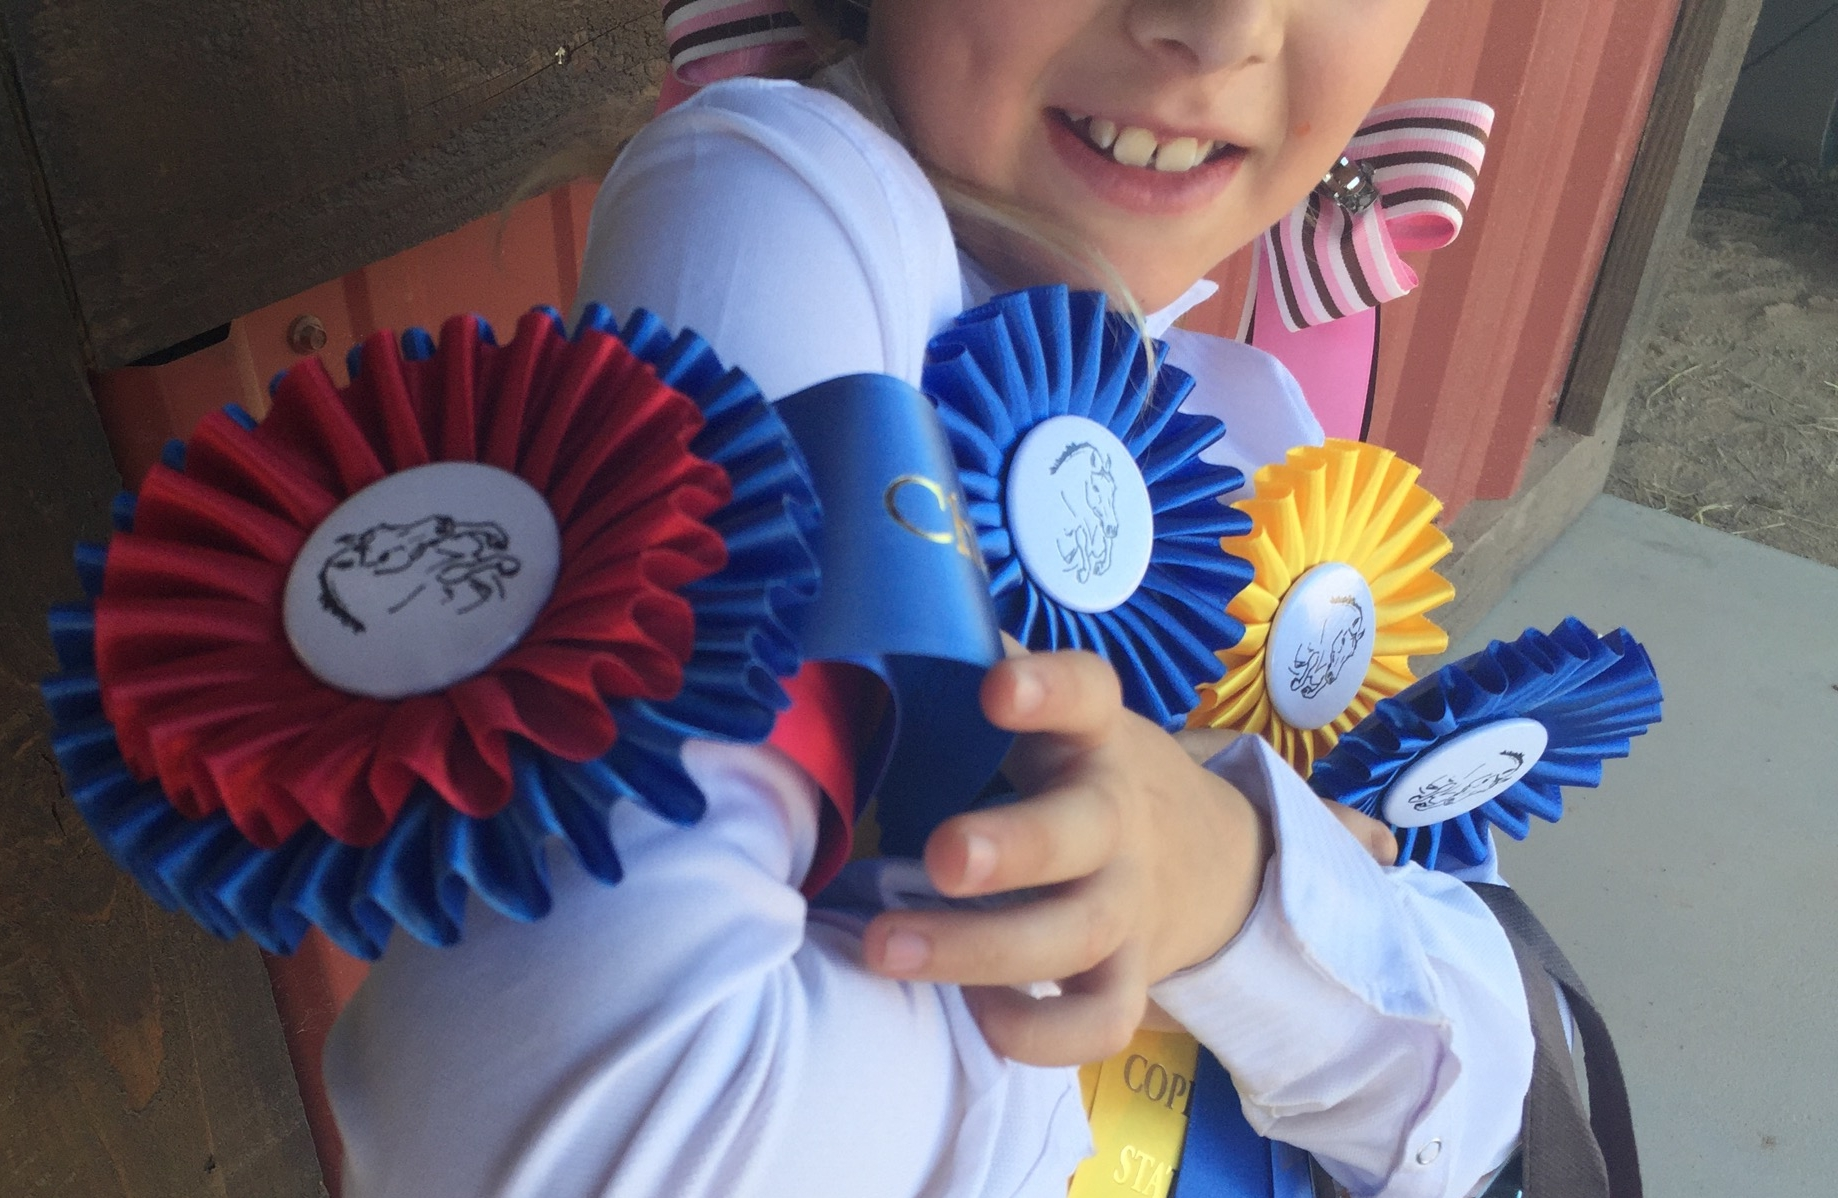 March 29, 2015 Show Results